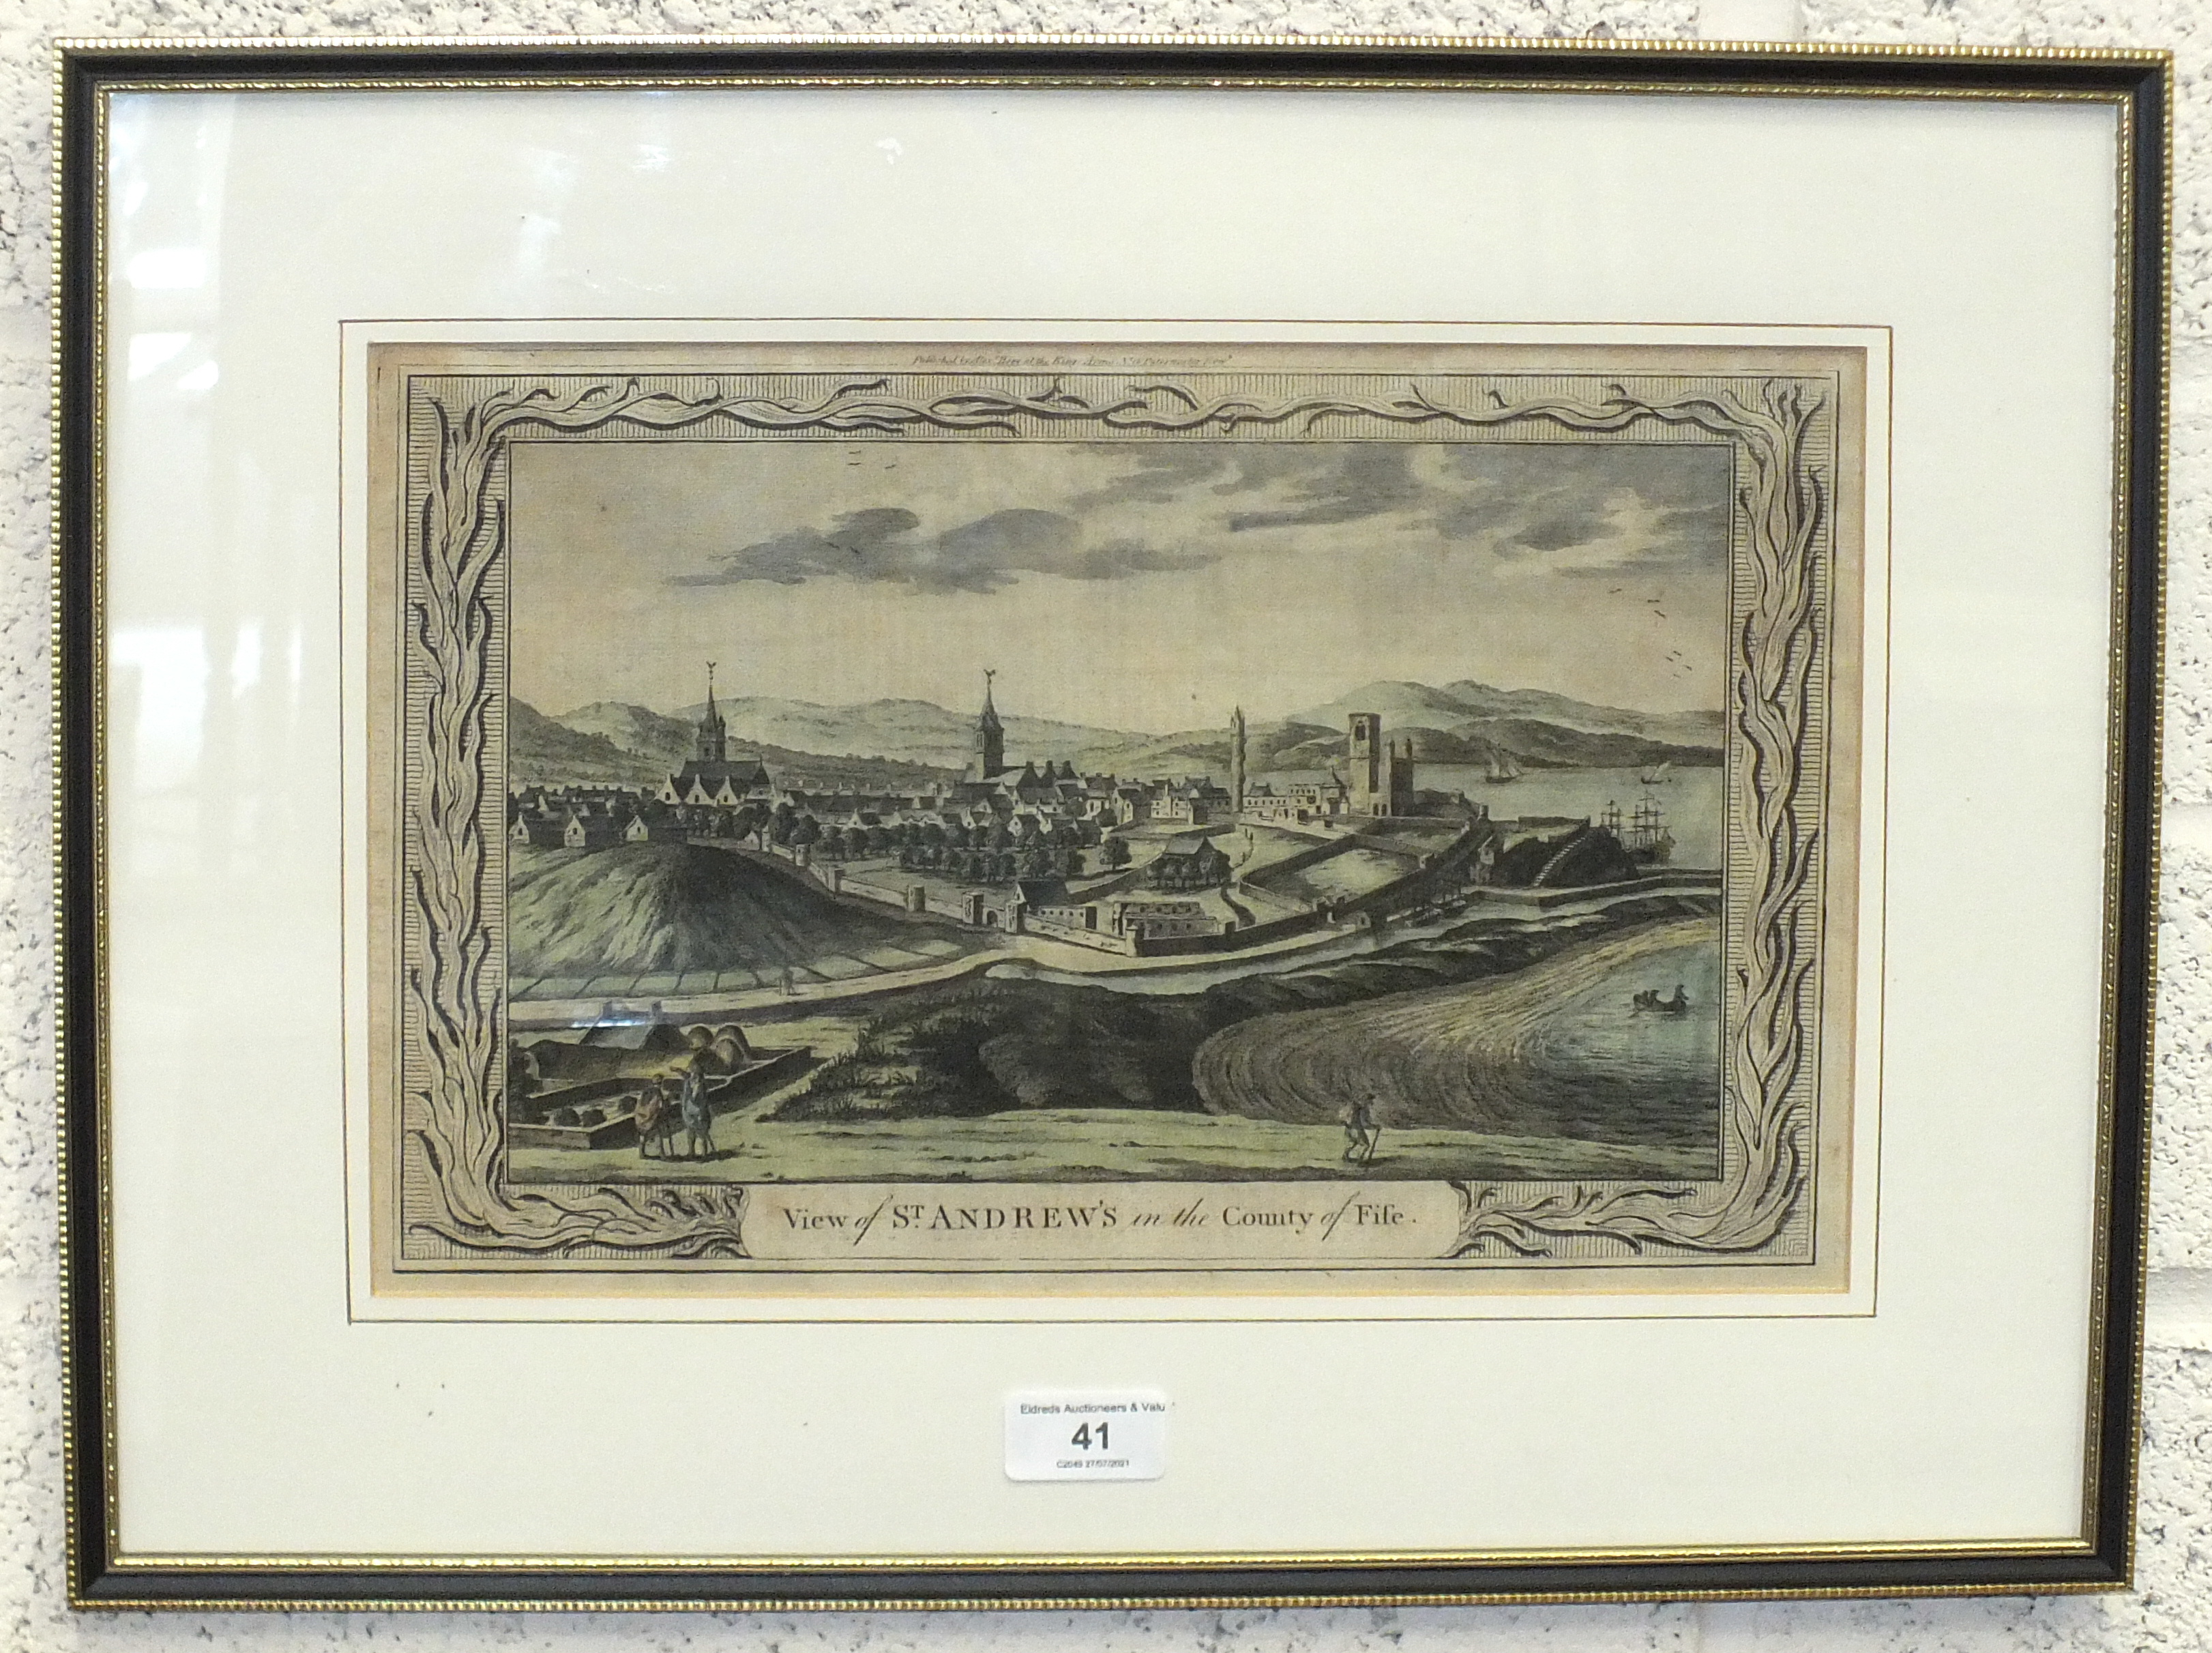 A 19th century hand-coloured engraving 'View of St Andrews in the County of Fife', 23 x 35cm. - Image 2 of 2